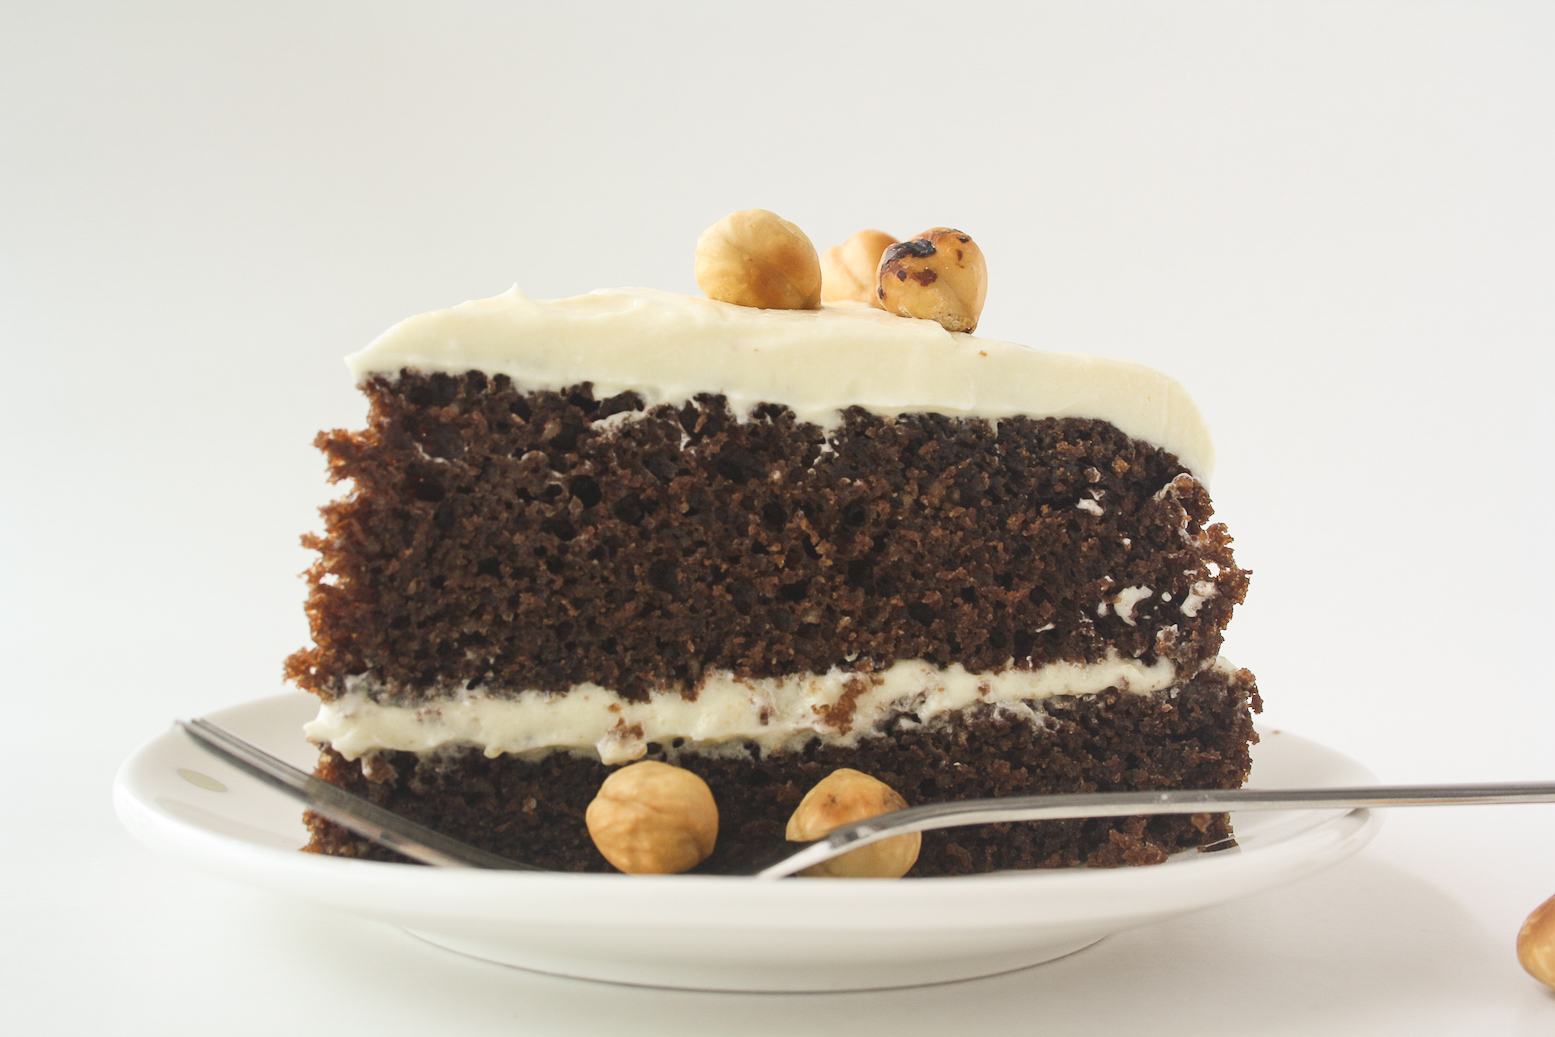 Chocolate Hazelnut Layer Cake with Cream Cheese Frosting